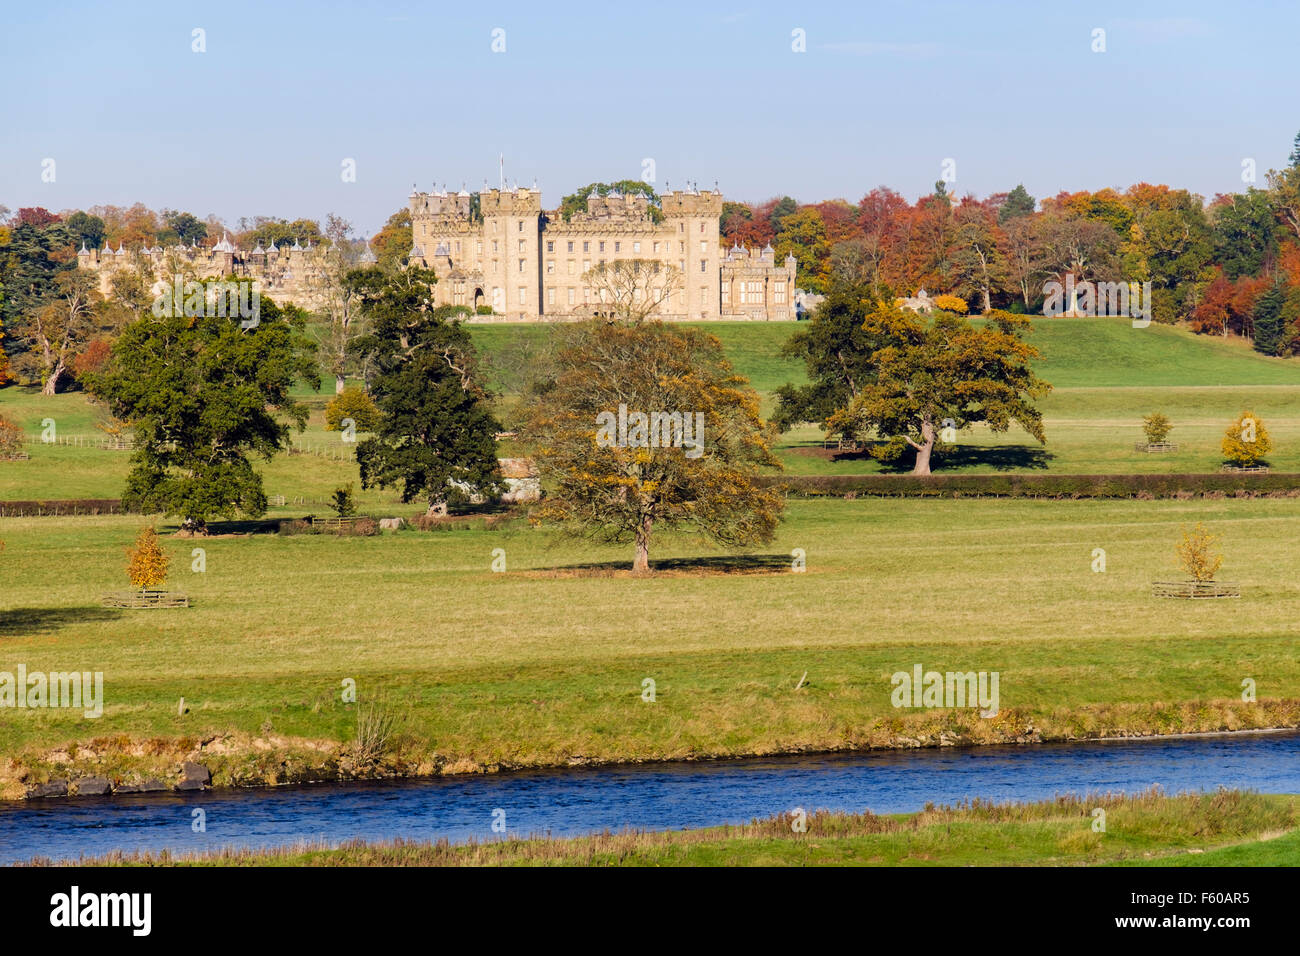 Floors Castle and grounds in autumn from across River Tweed. Kelso, Berwickshire, Scottish Borders, Scotland, UK, - Stock Image